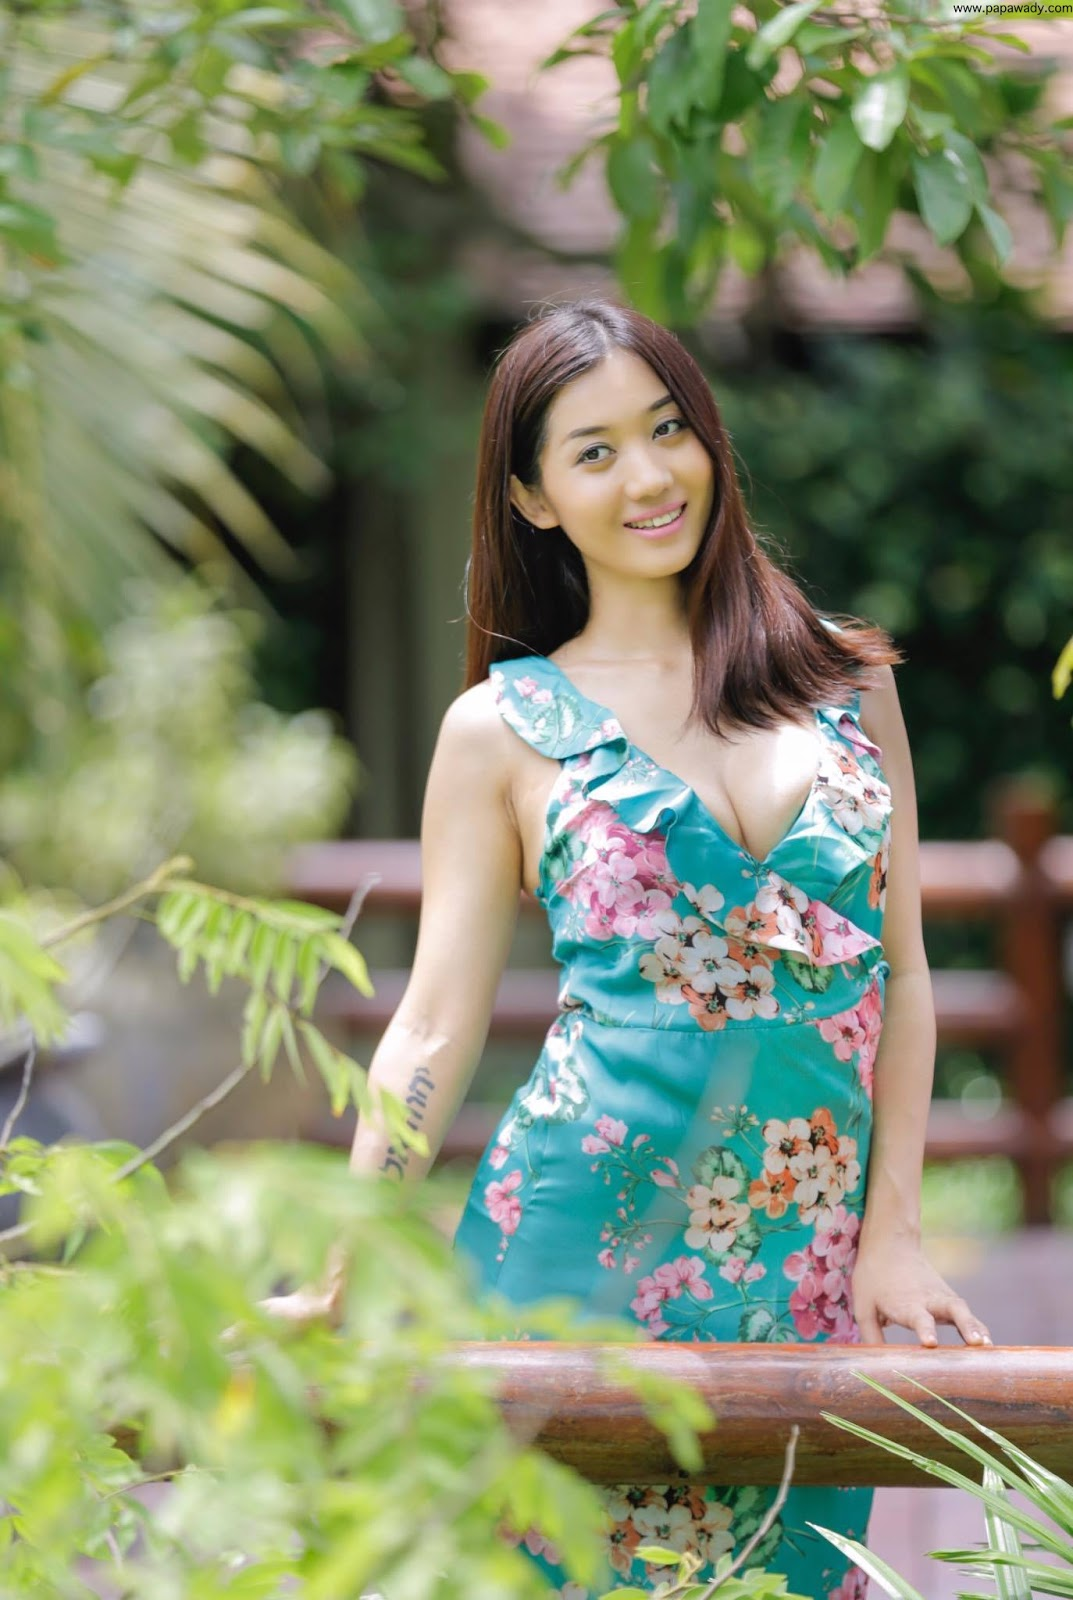 Lu Lu Aung In Black Jacket Fashion : All Black Style Outdoor Photoshoot